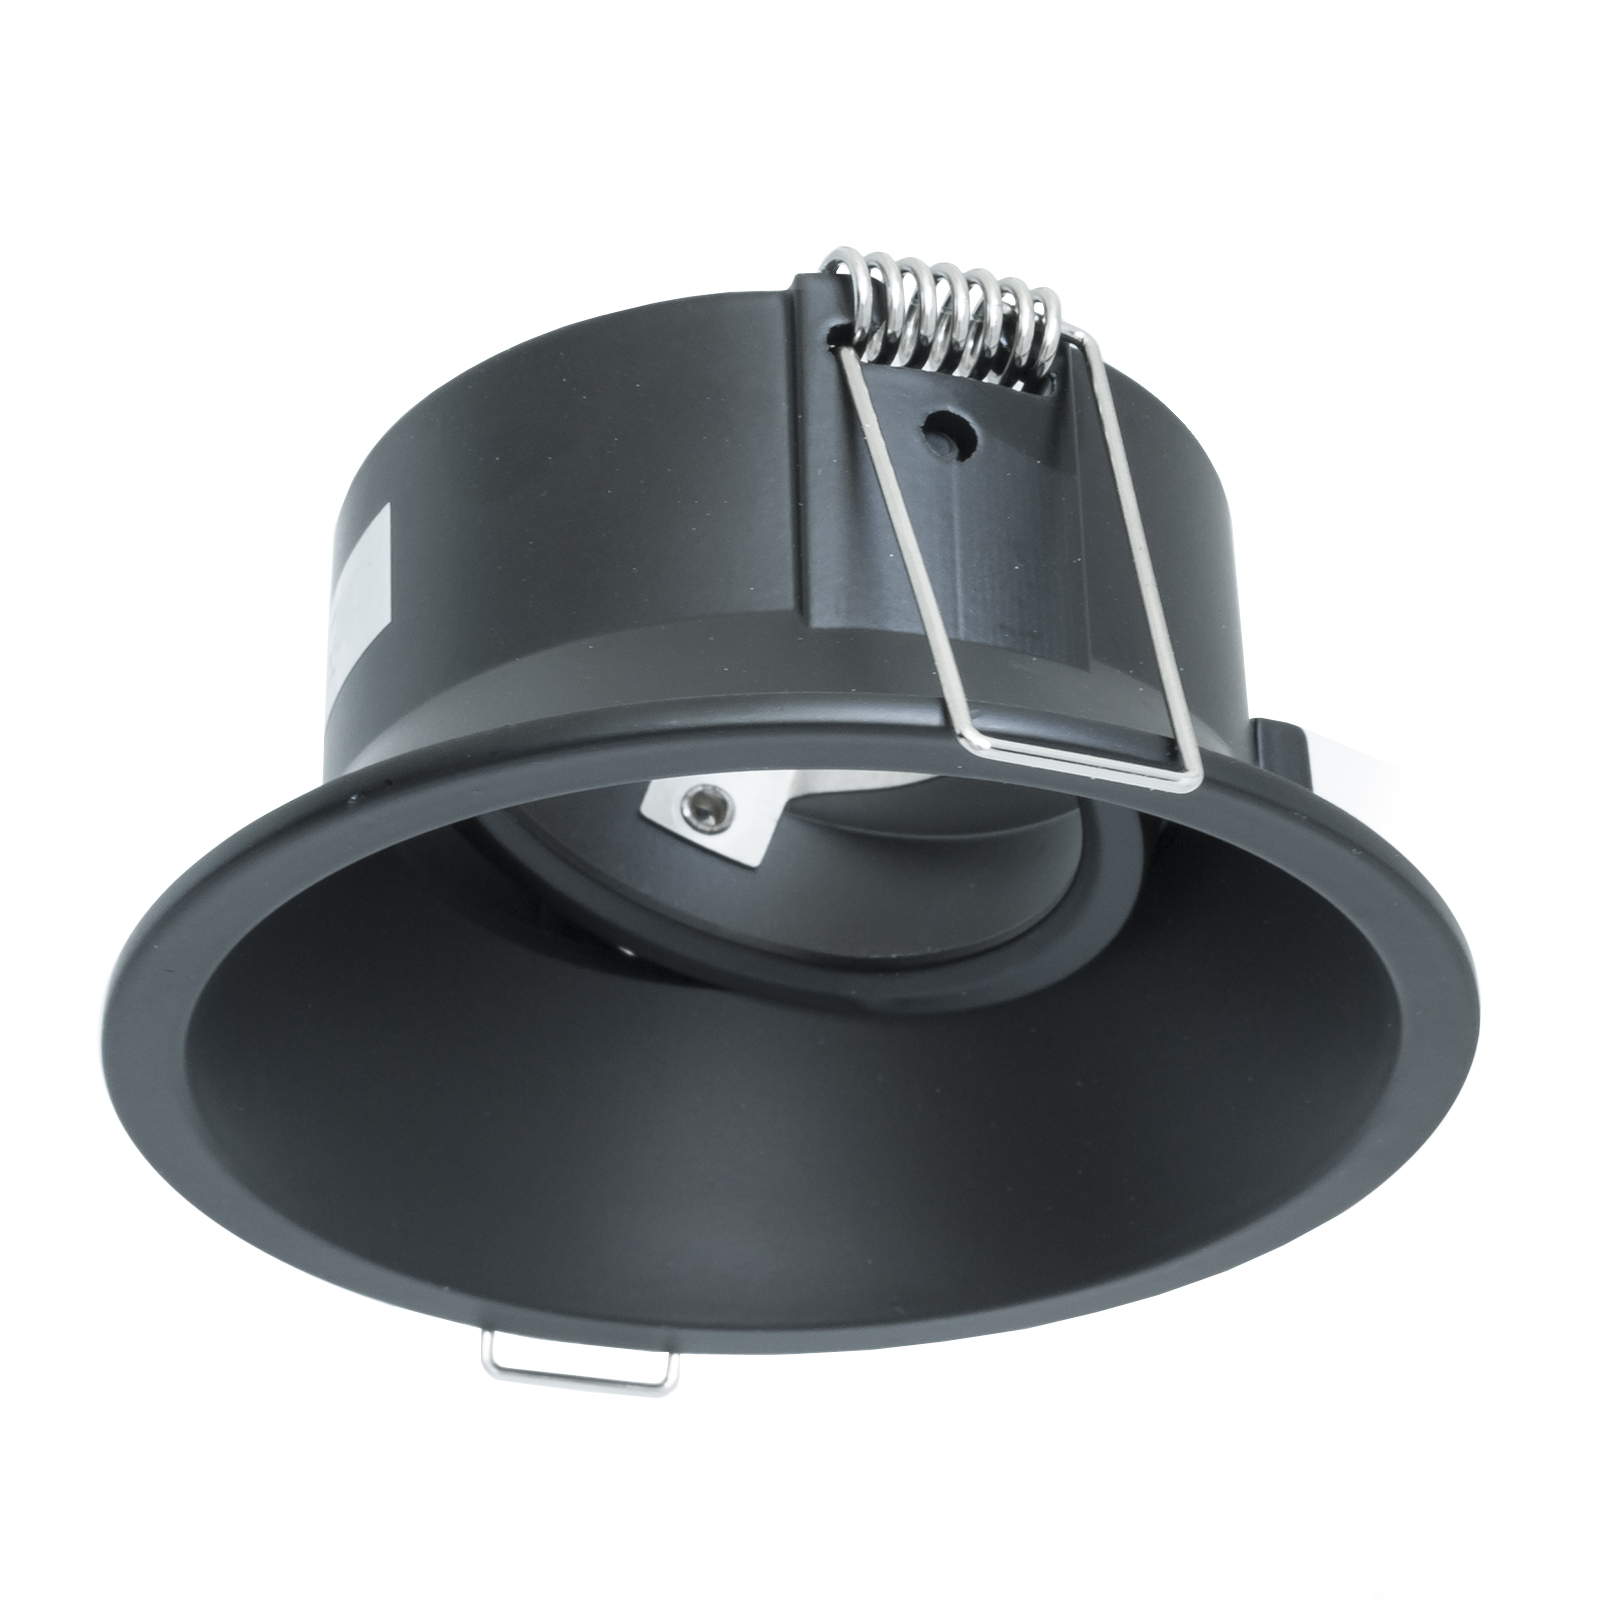 Portafaretto modern round door spotlight black recessed 85mm light adjustable GU10